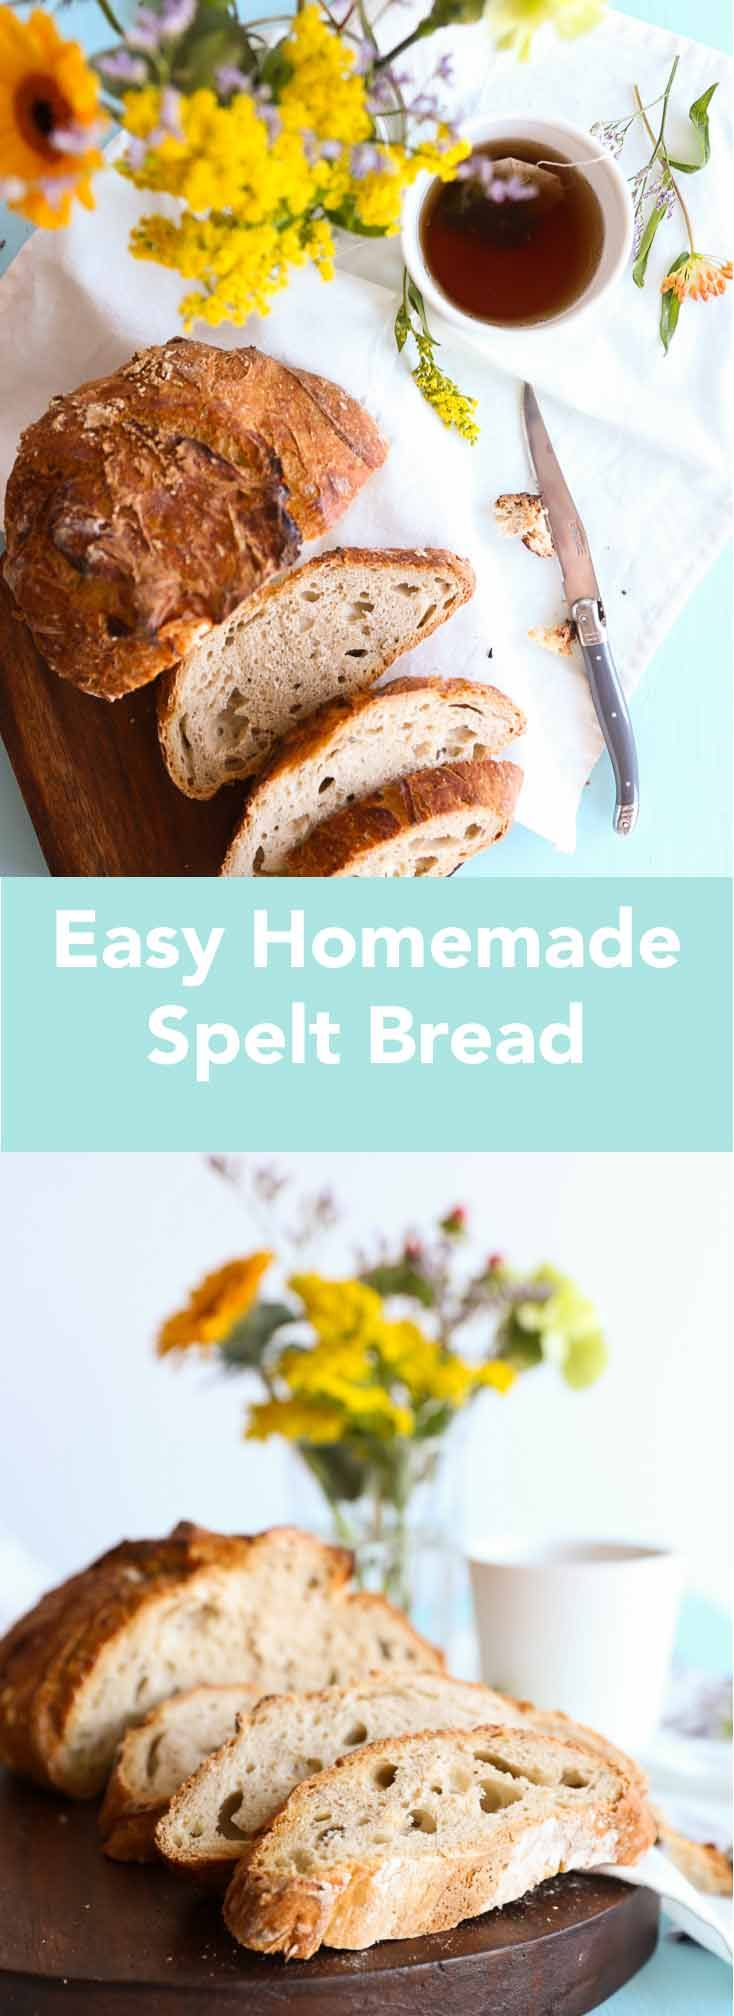 Easy Homemade Spelt Bread. Such an easy way to make your own bread! You don't have to knead, all you need to do is mix the ingredients together and wait. No knead bread made with spelt. By Eva in the Kitchen.